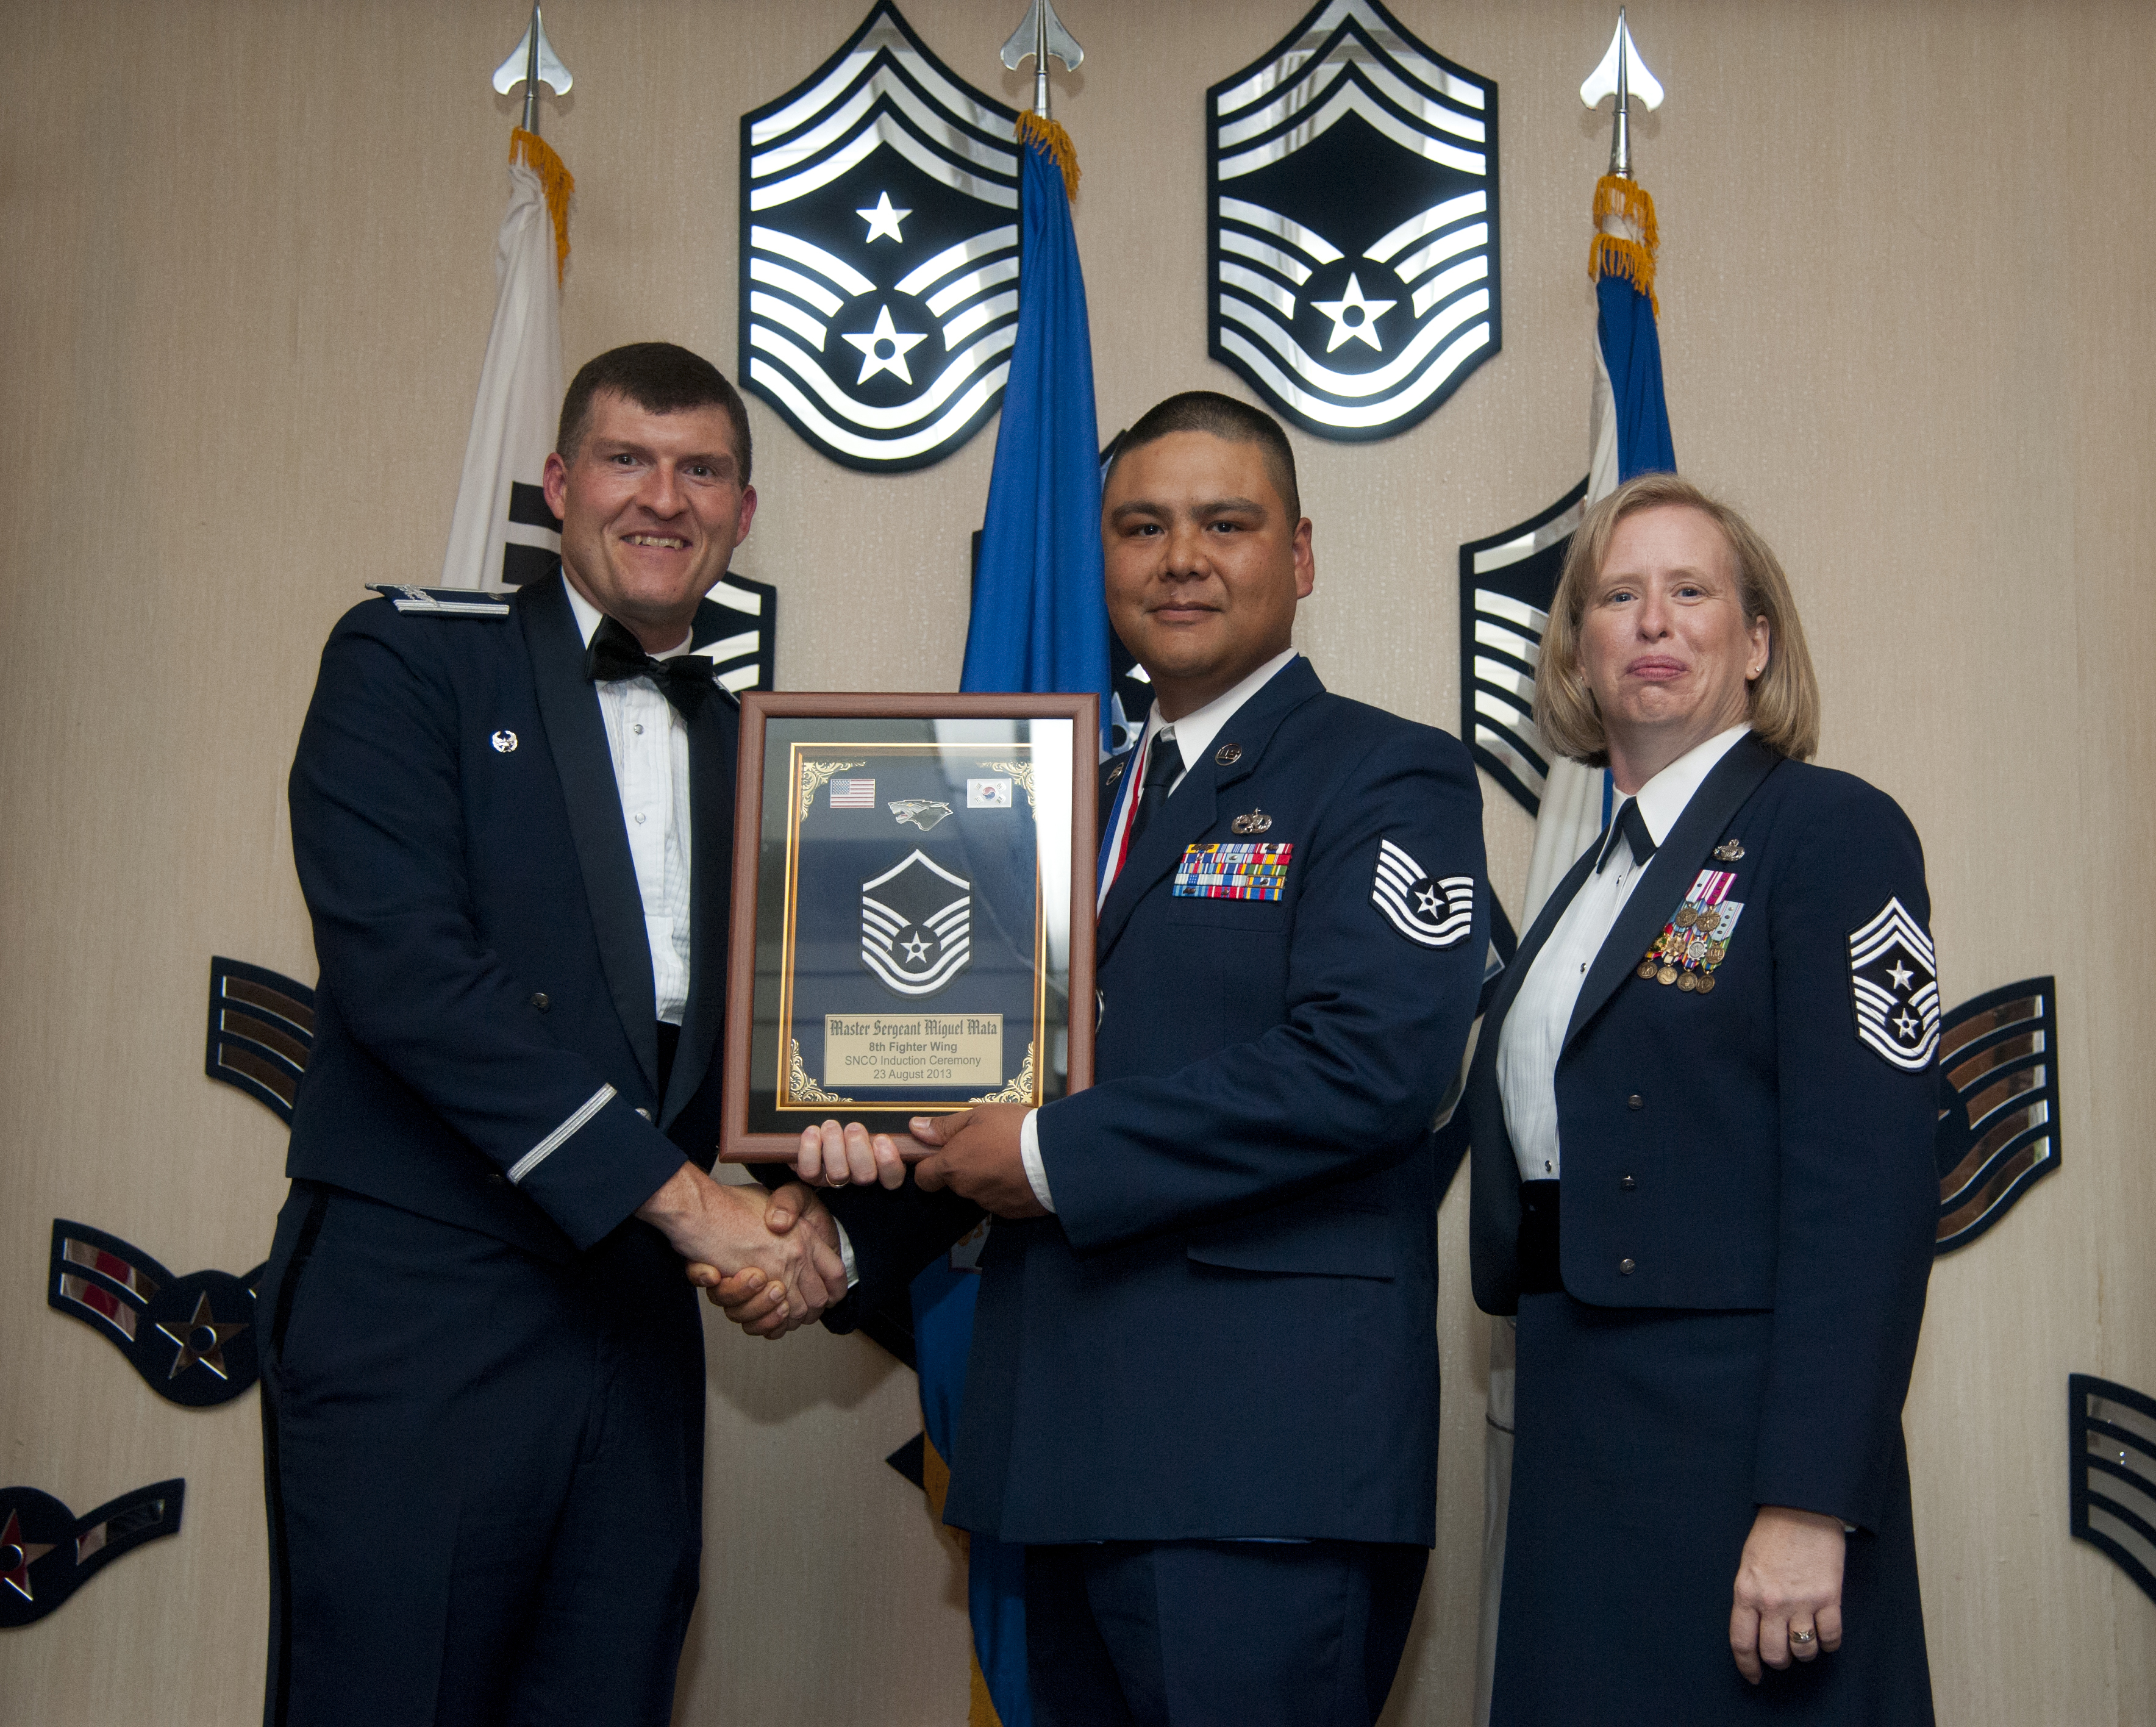 csaf cmsaf join wolf pack snco induction kunsan air. Black Bedroom Furniture Sets. Home Design Ideas